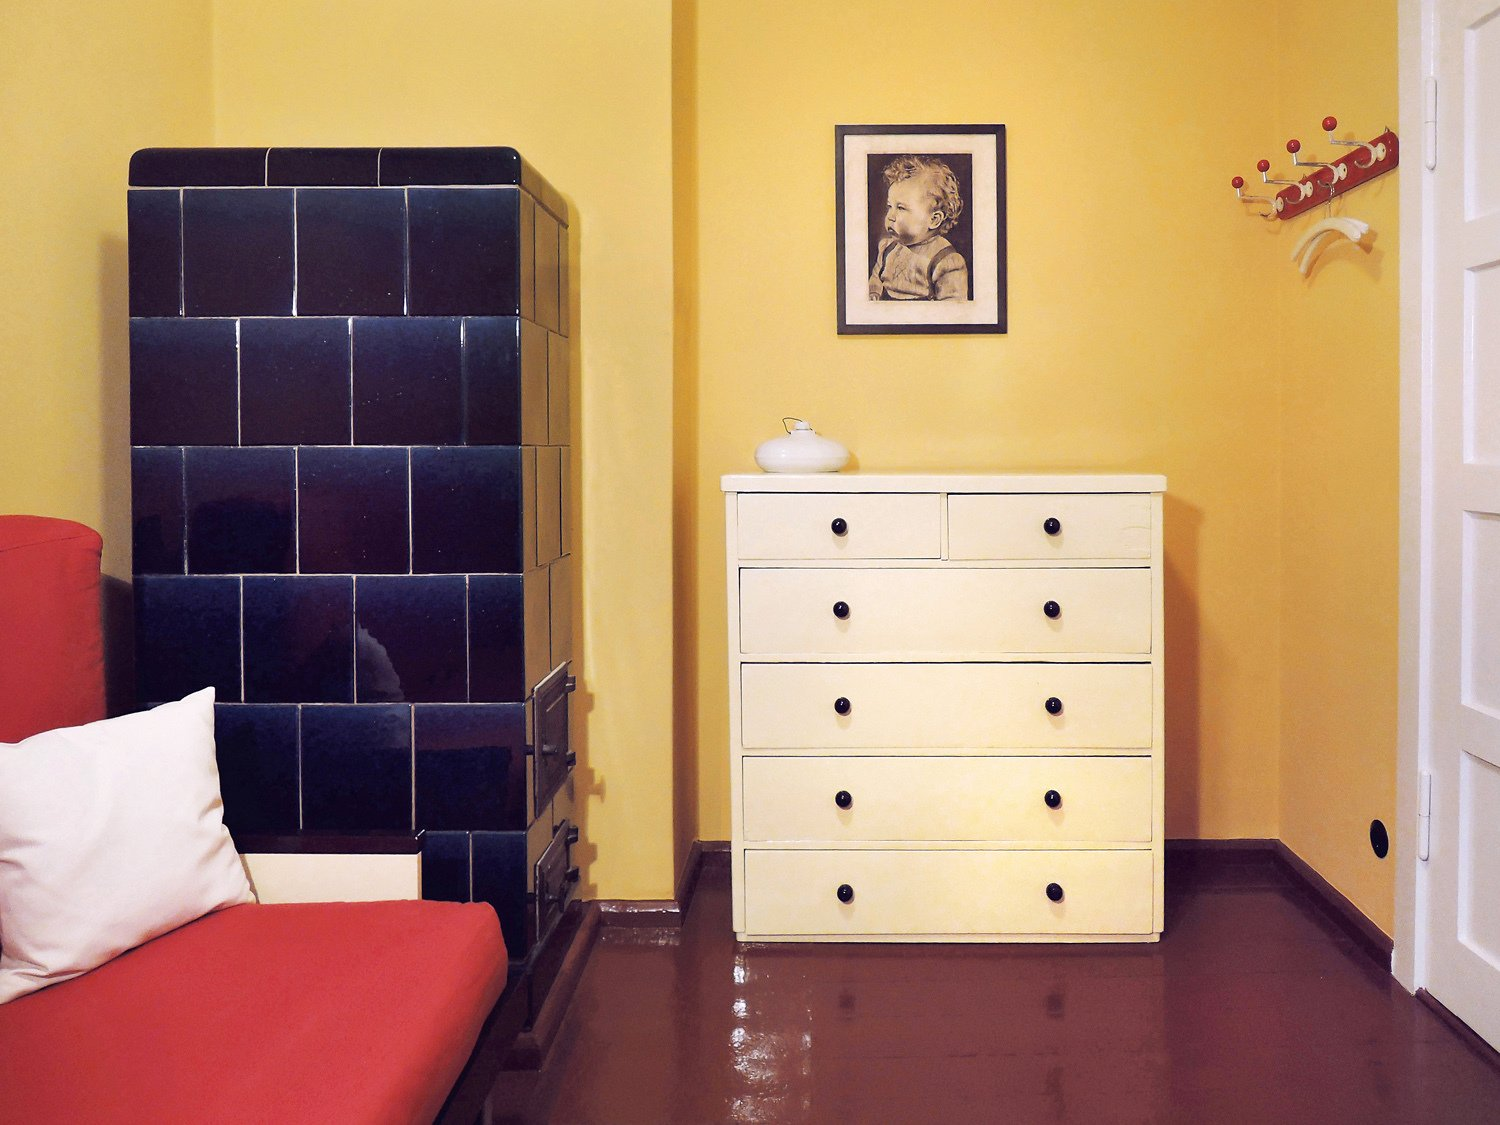 Kids, Bed, Shelves, Night Stands, Storage, Medium Hardwood, Bedroom, Pre-Teen, Teen, and Neutral 2nd bedroom   Kids Storage Neutral Bed Photos from Taut´s Home (Tautes Heim) - Rentable museum of design and architecture of the 1920s